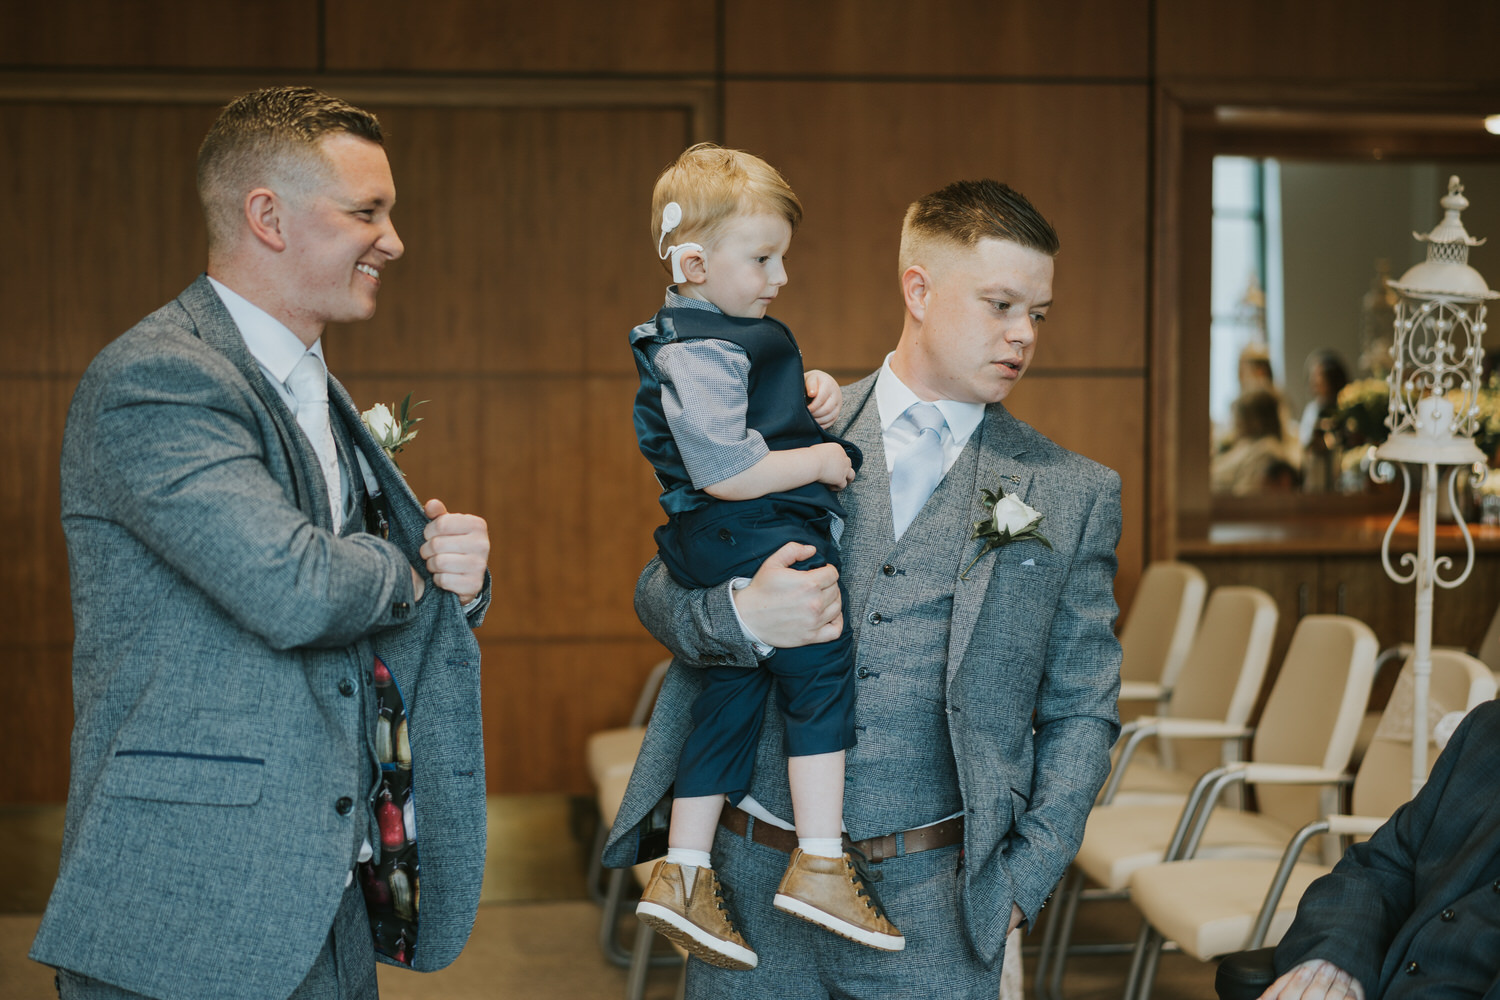 Lisburn Wedding at Lagan Valley Island 41